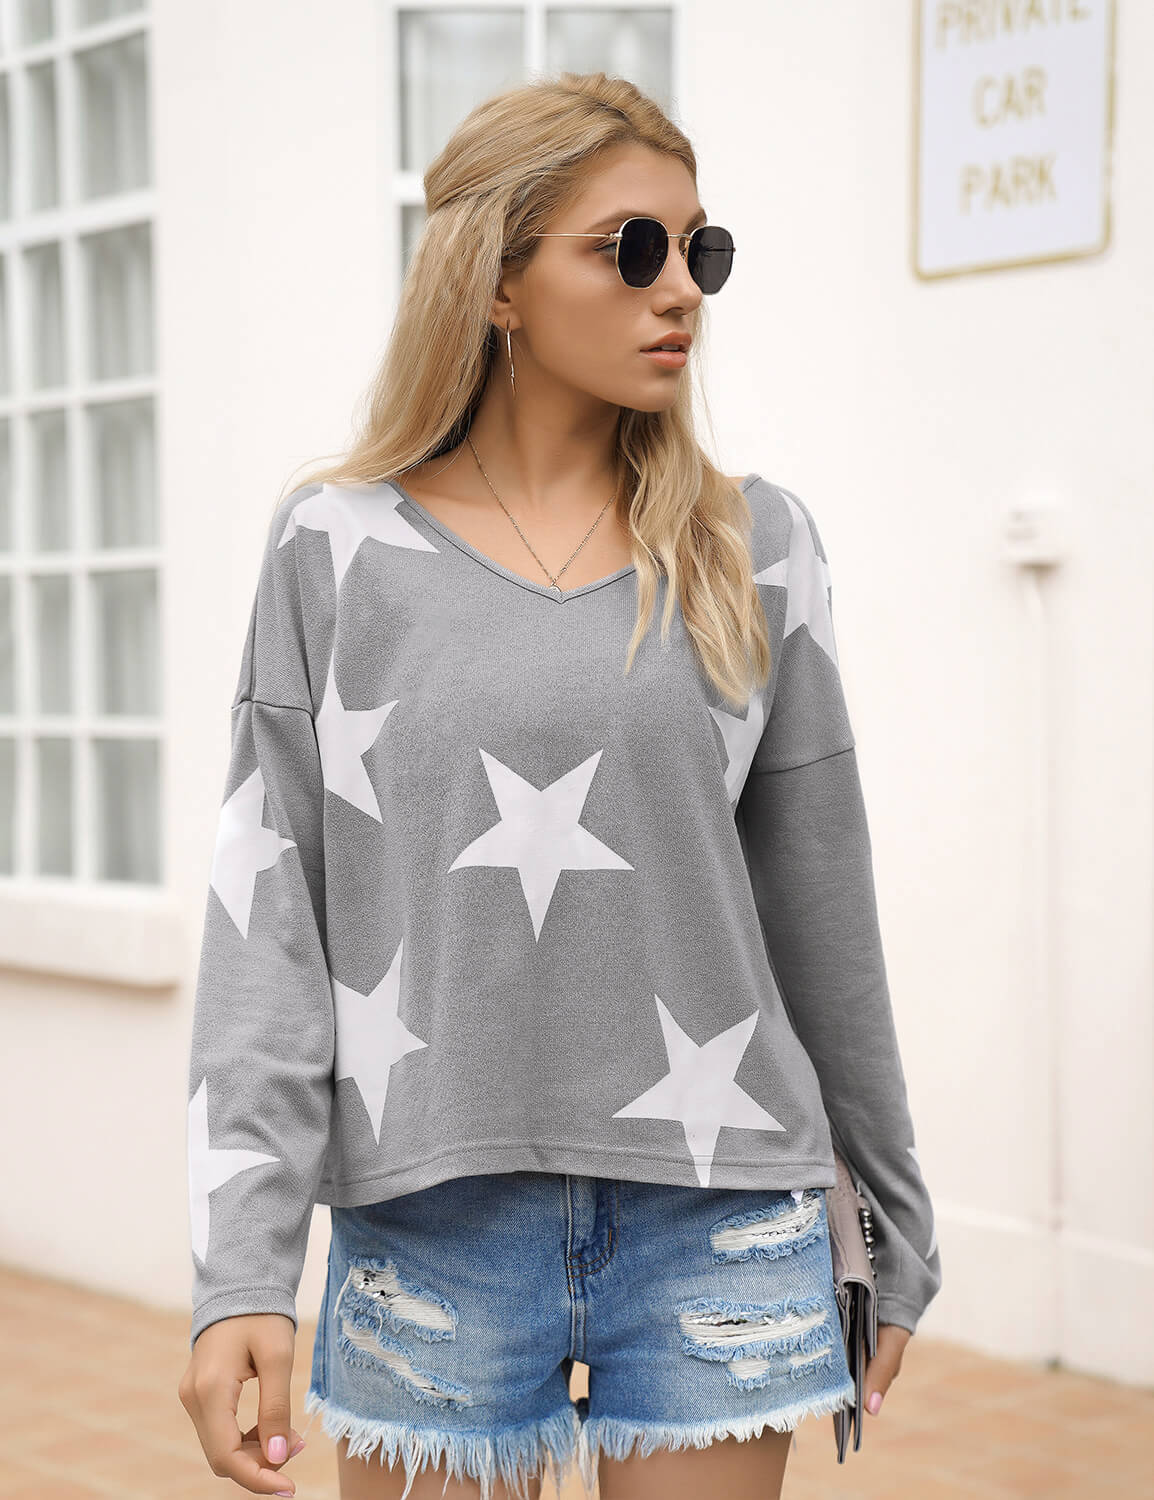 Blooming Jelly_Comfy V Neck Stars Print Sweater_Gray_295033_07_Fall Fashion Women's Outfits_Tops_Sweater